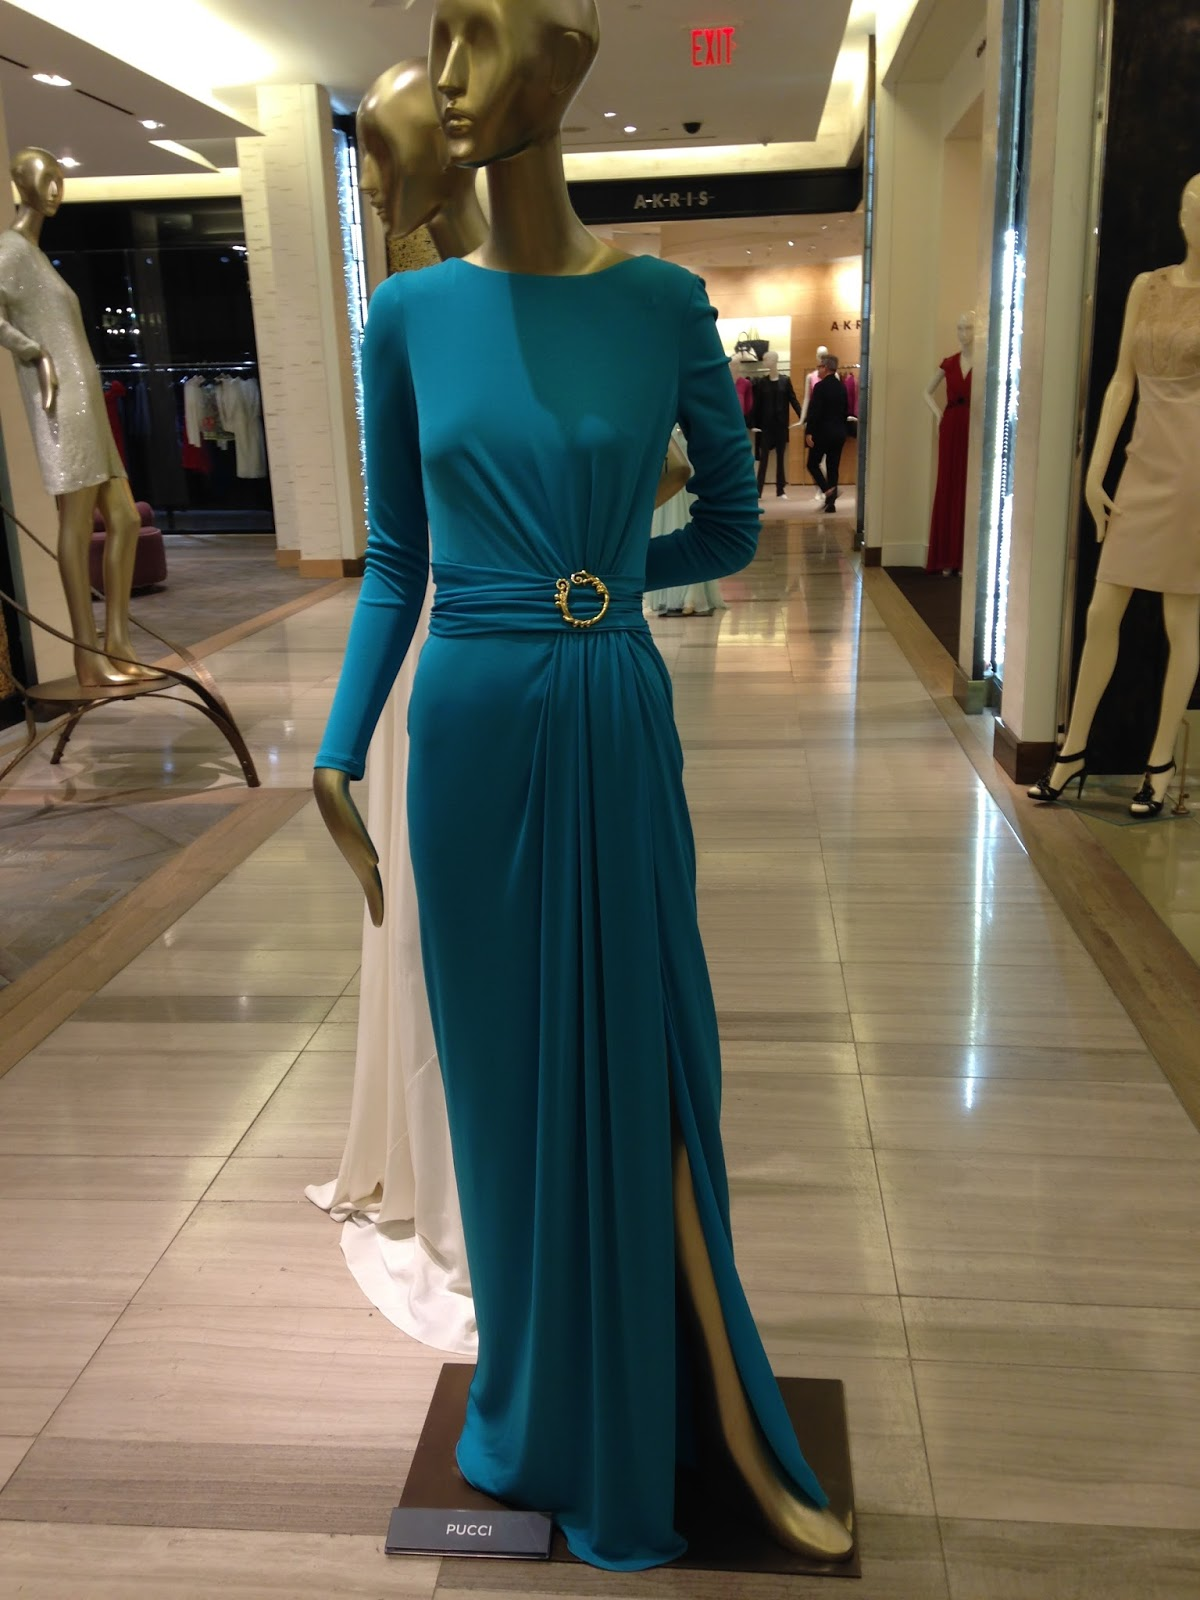 Evening Wear Collections at Saks Fifth Avenue - One Style at a Time